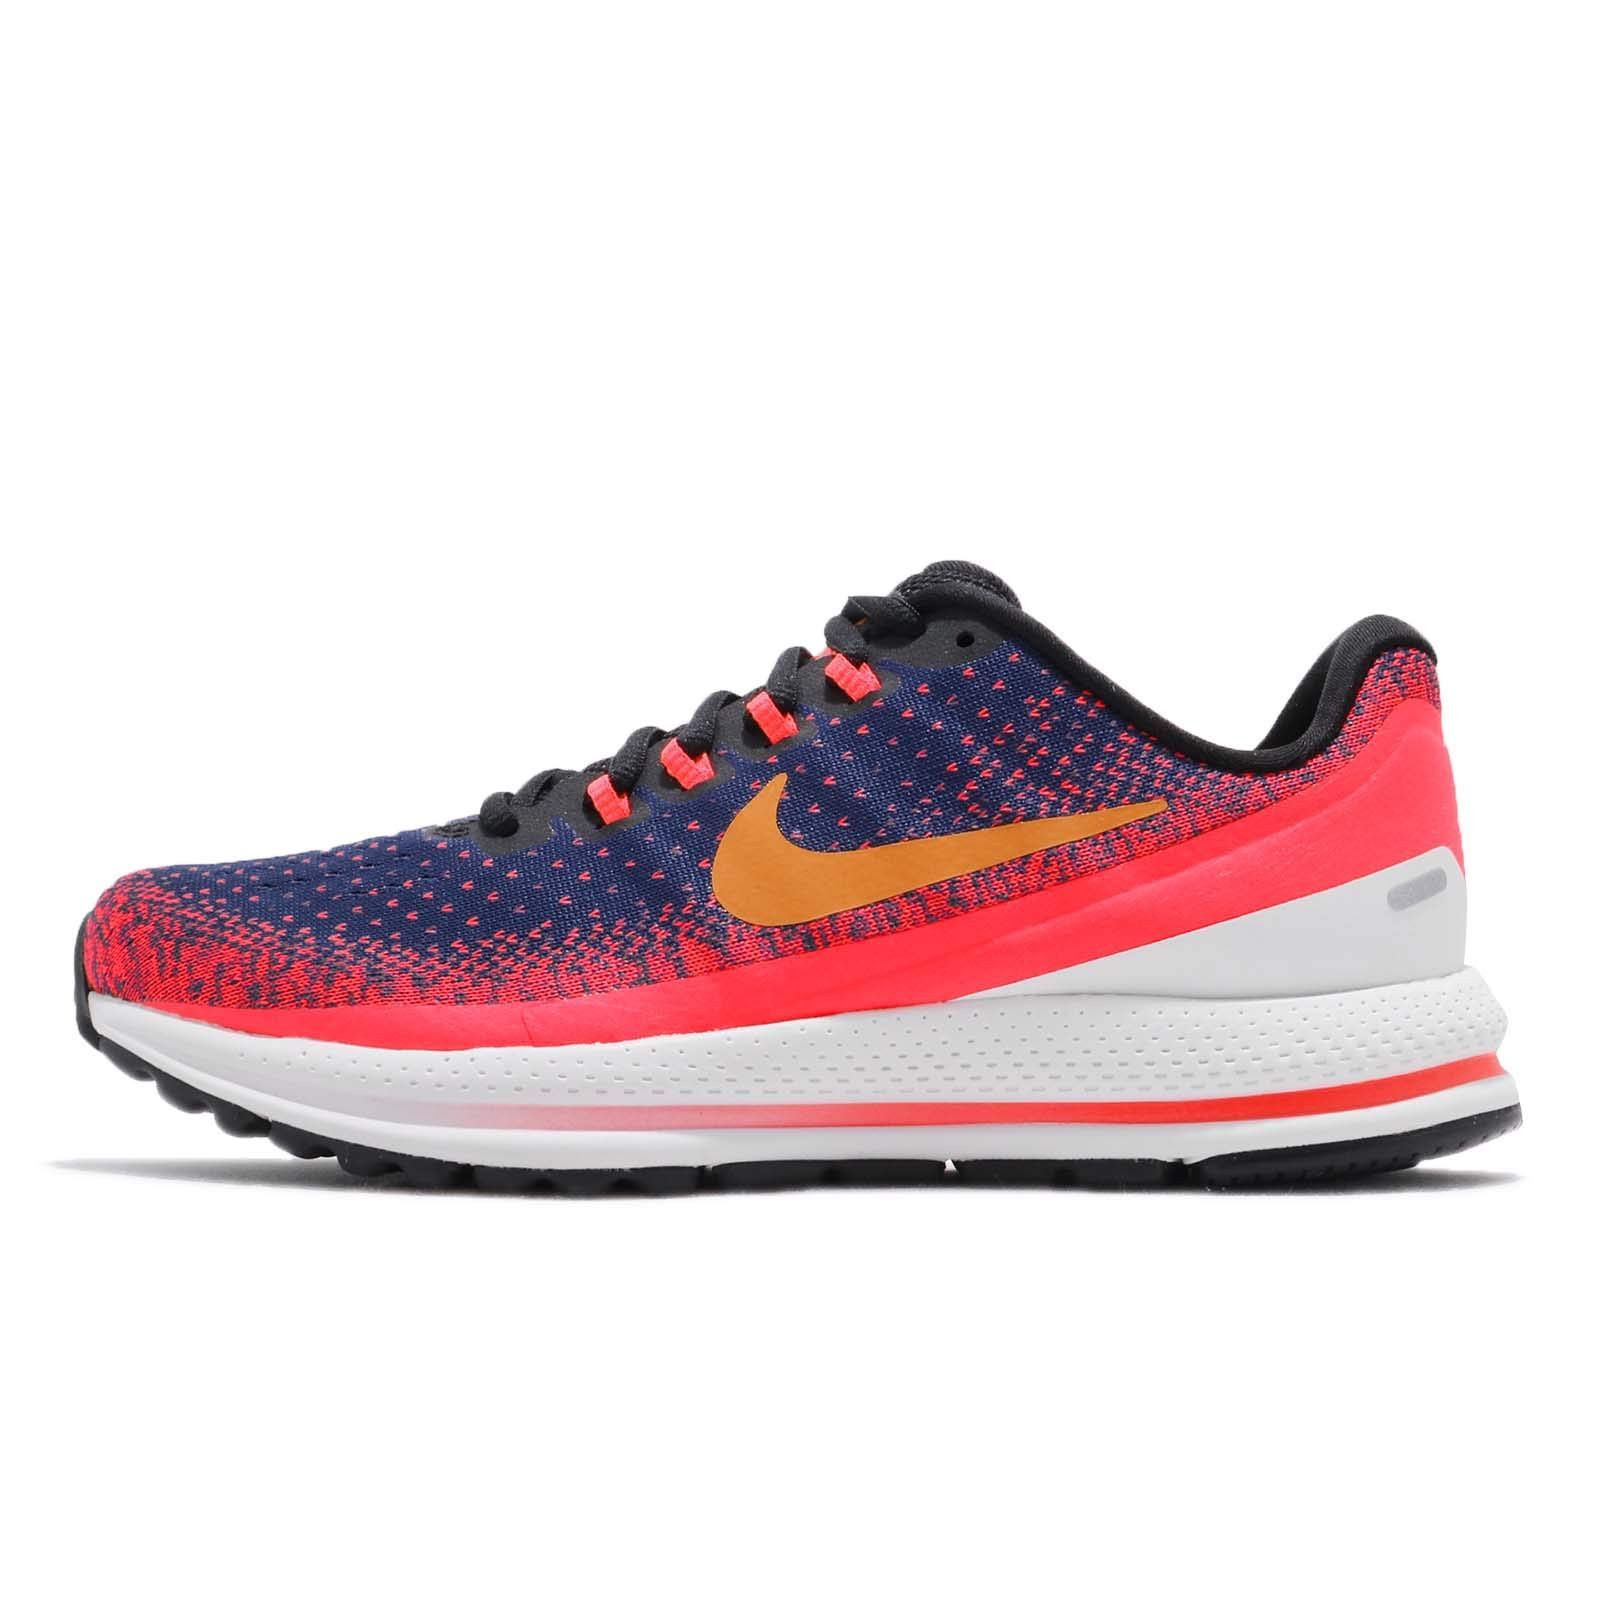 Nike Women's Air Zoom Vomero 13 Running Shoe Blue Void/Orange Peel-Flash Crimson 6.0